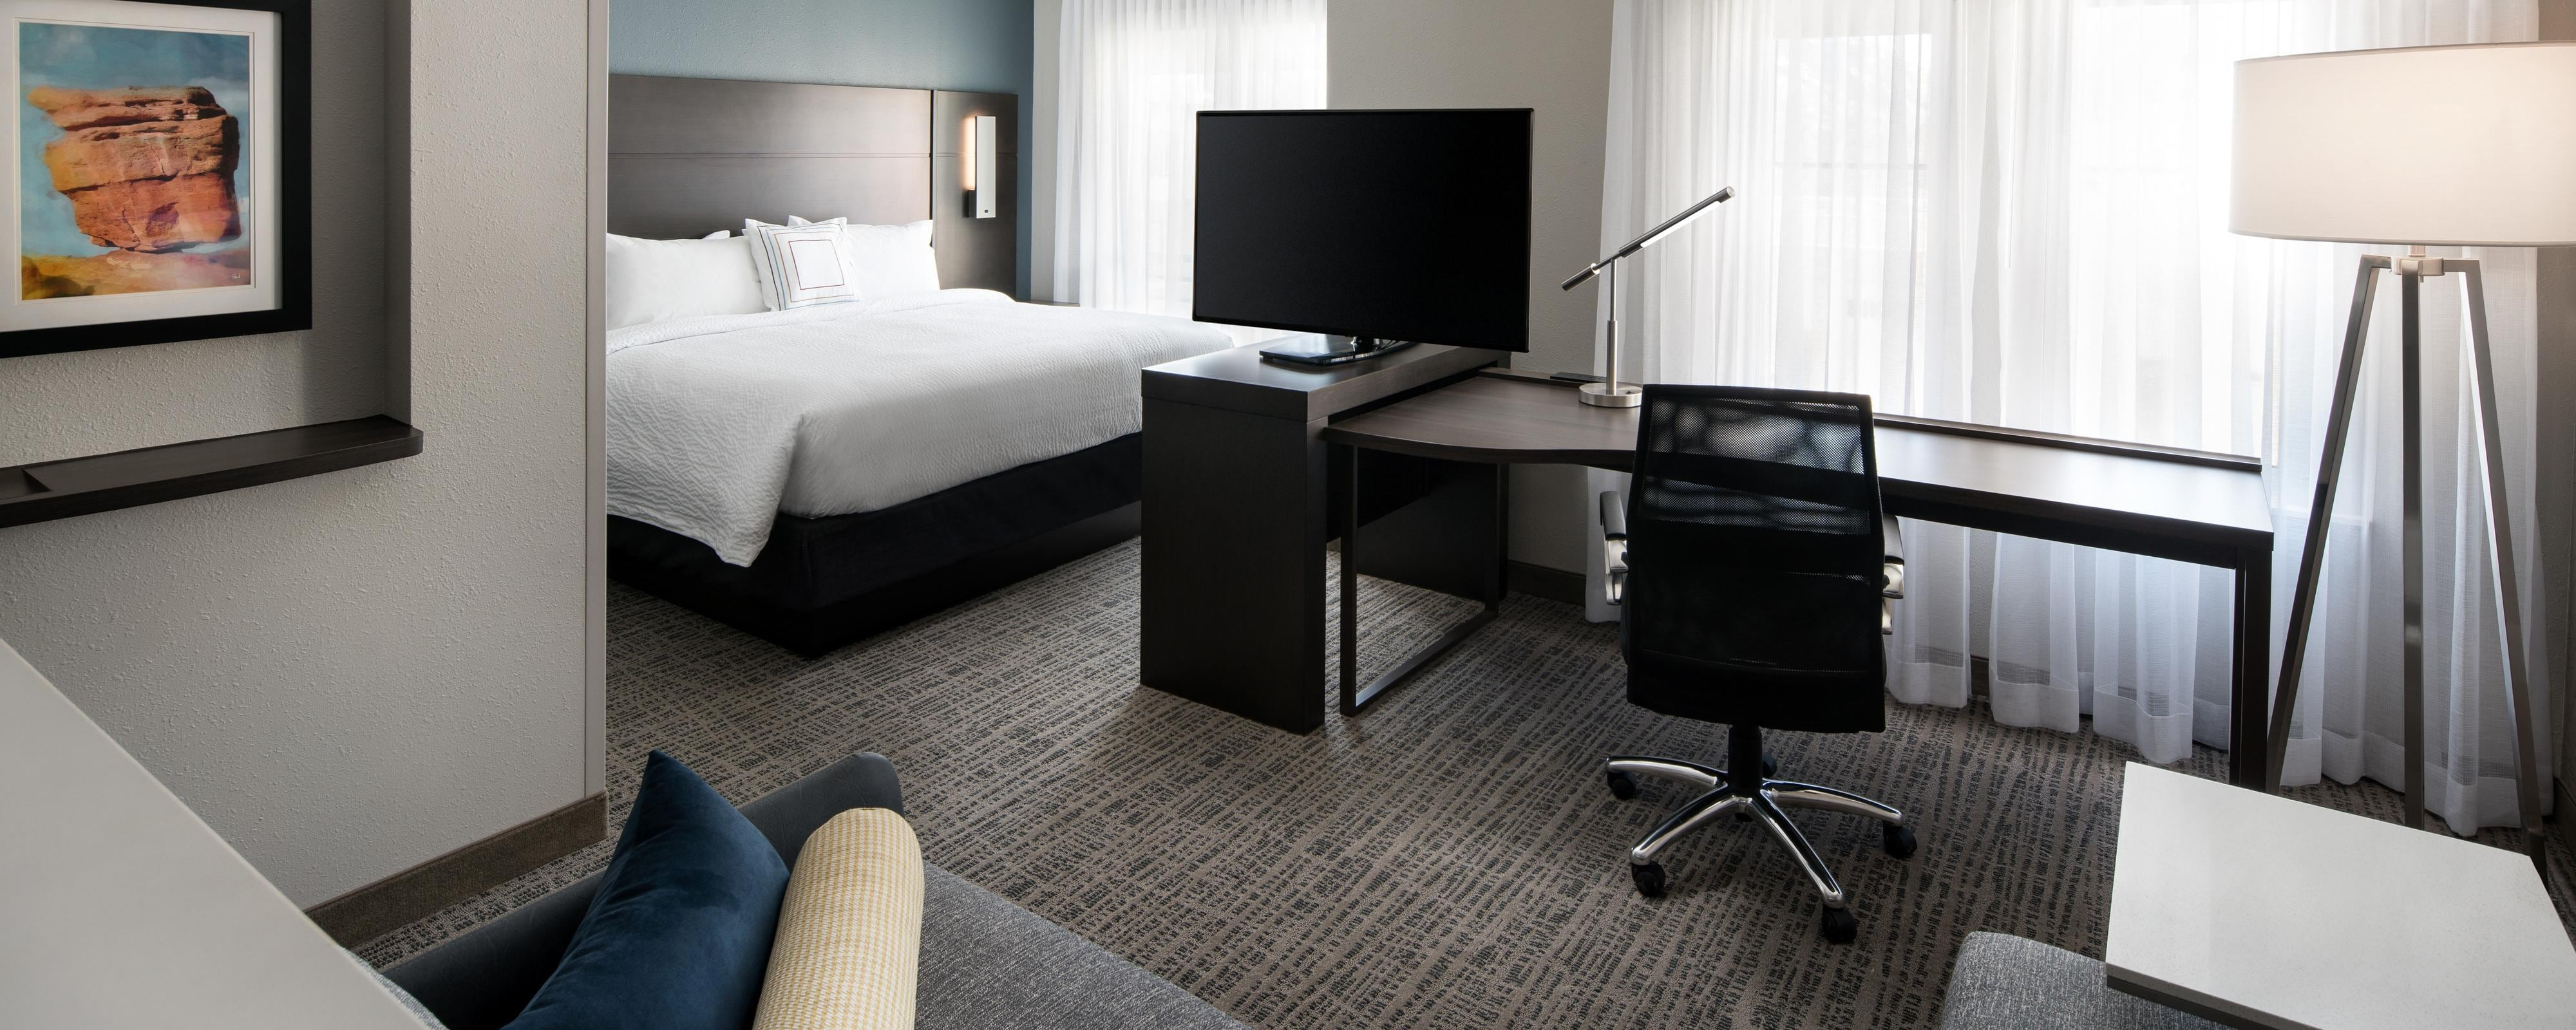 Extended-Stay Hotel in Capitol Heights | Residence Inn Upper